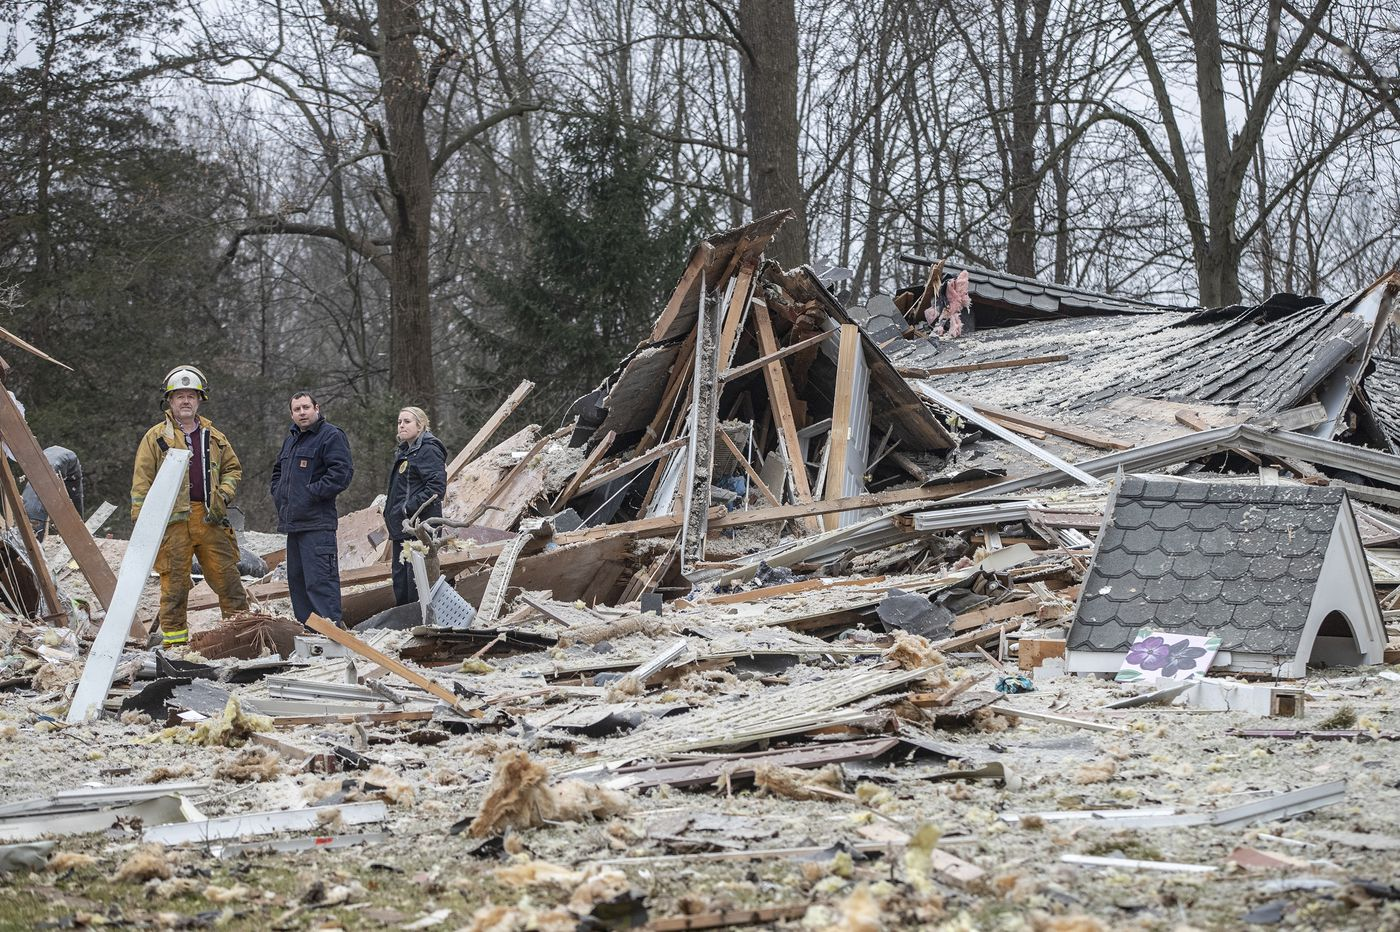 Bucks County house reduced to rubble after an explosion